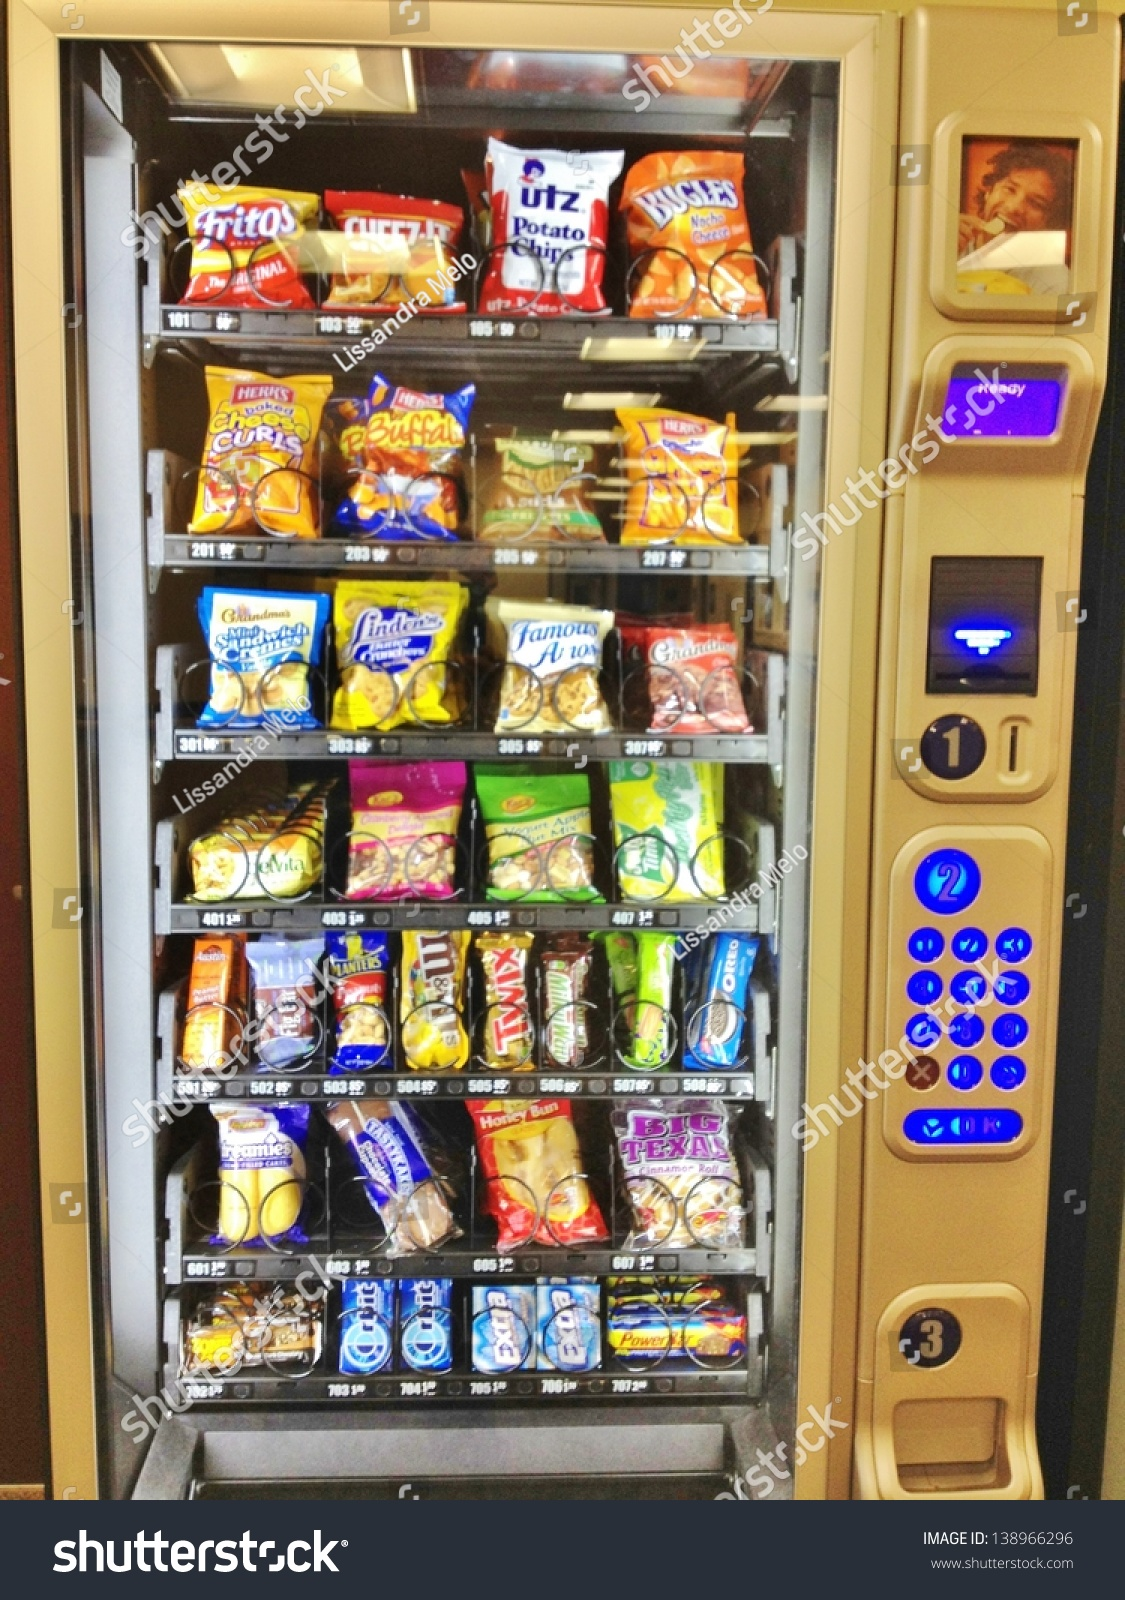 How To Get Food Out Of A Vending Machine